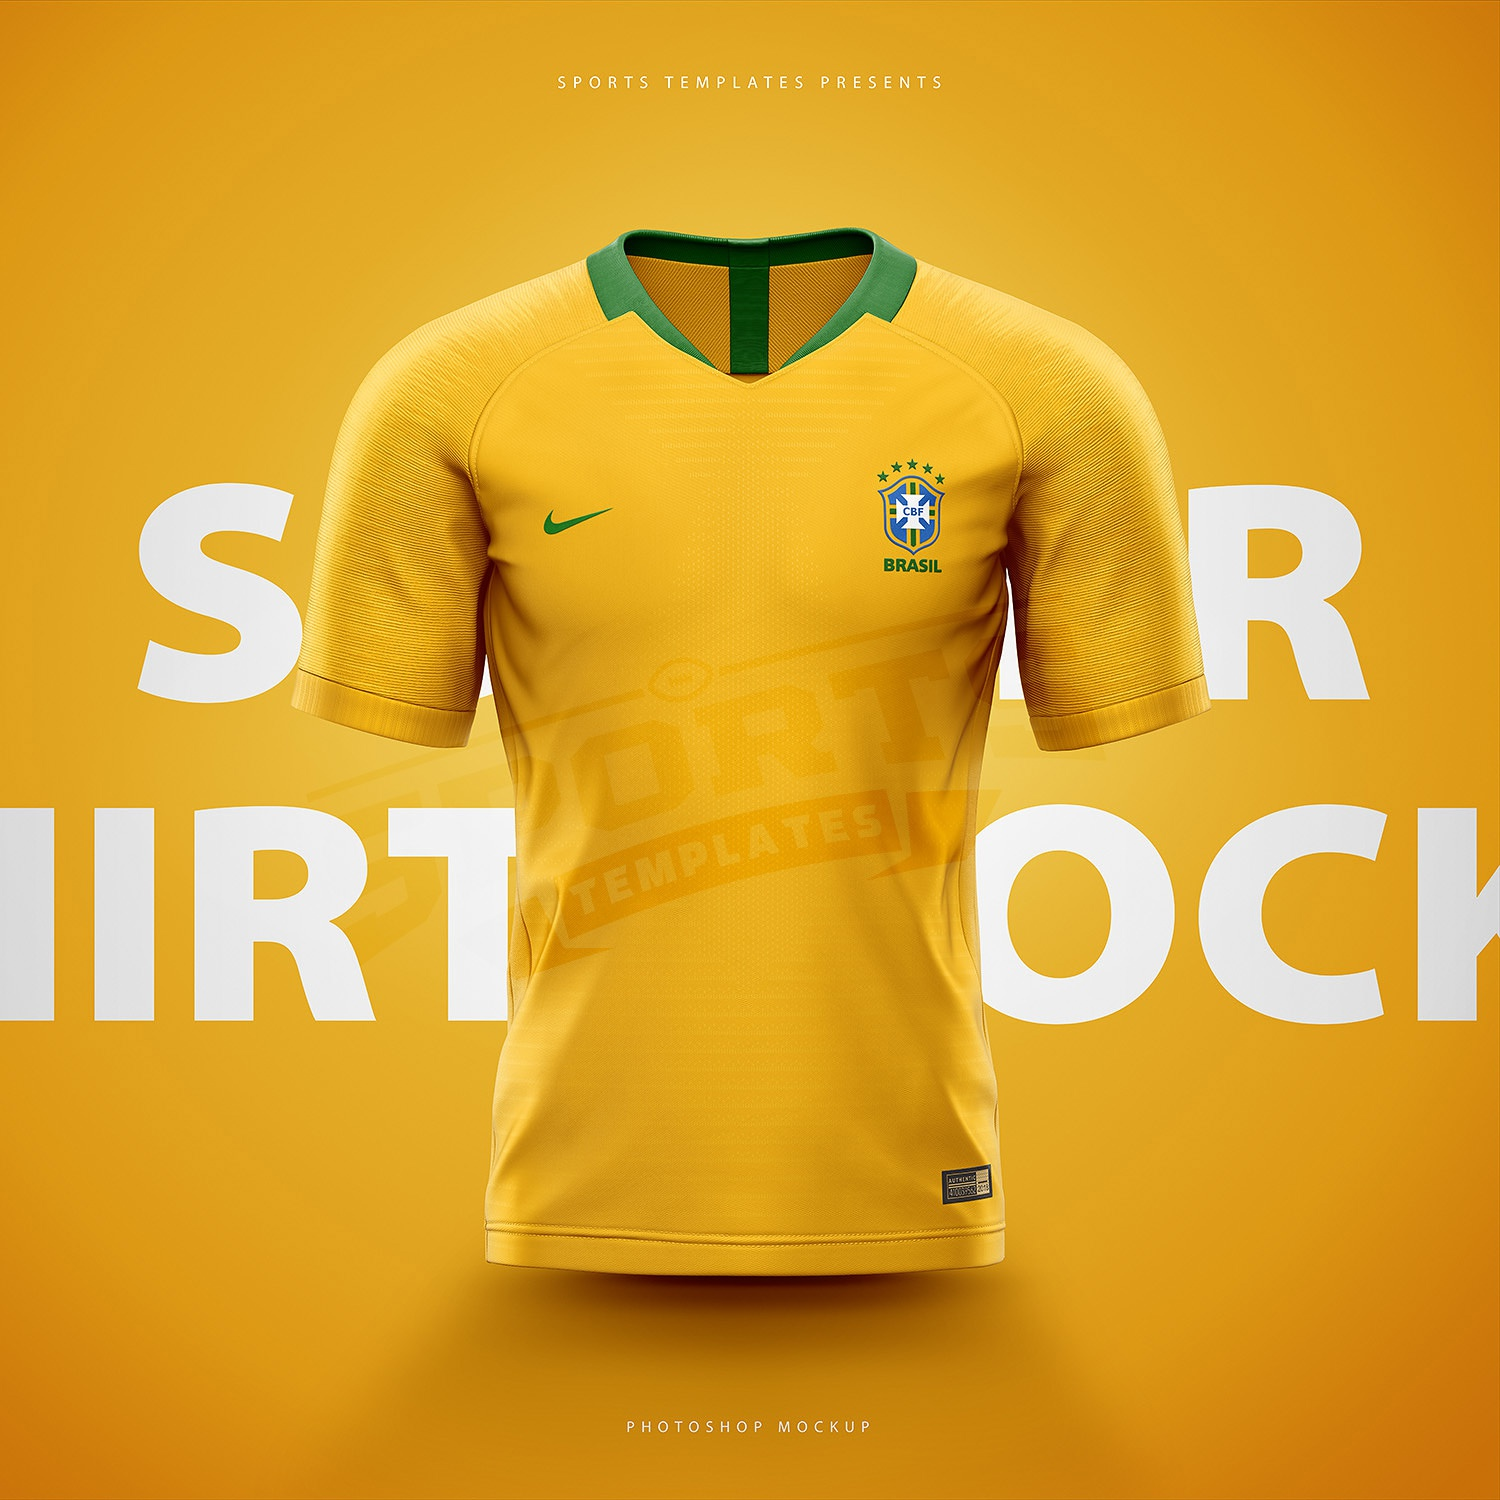 603e7c30 Brasil soccer football world cup 2018 shirt nike aeroswift photoshop  template.